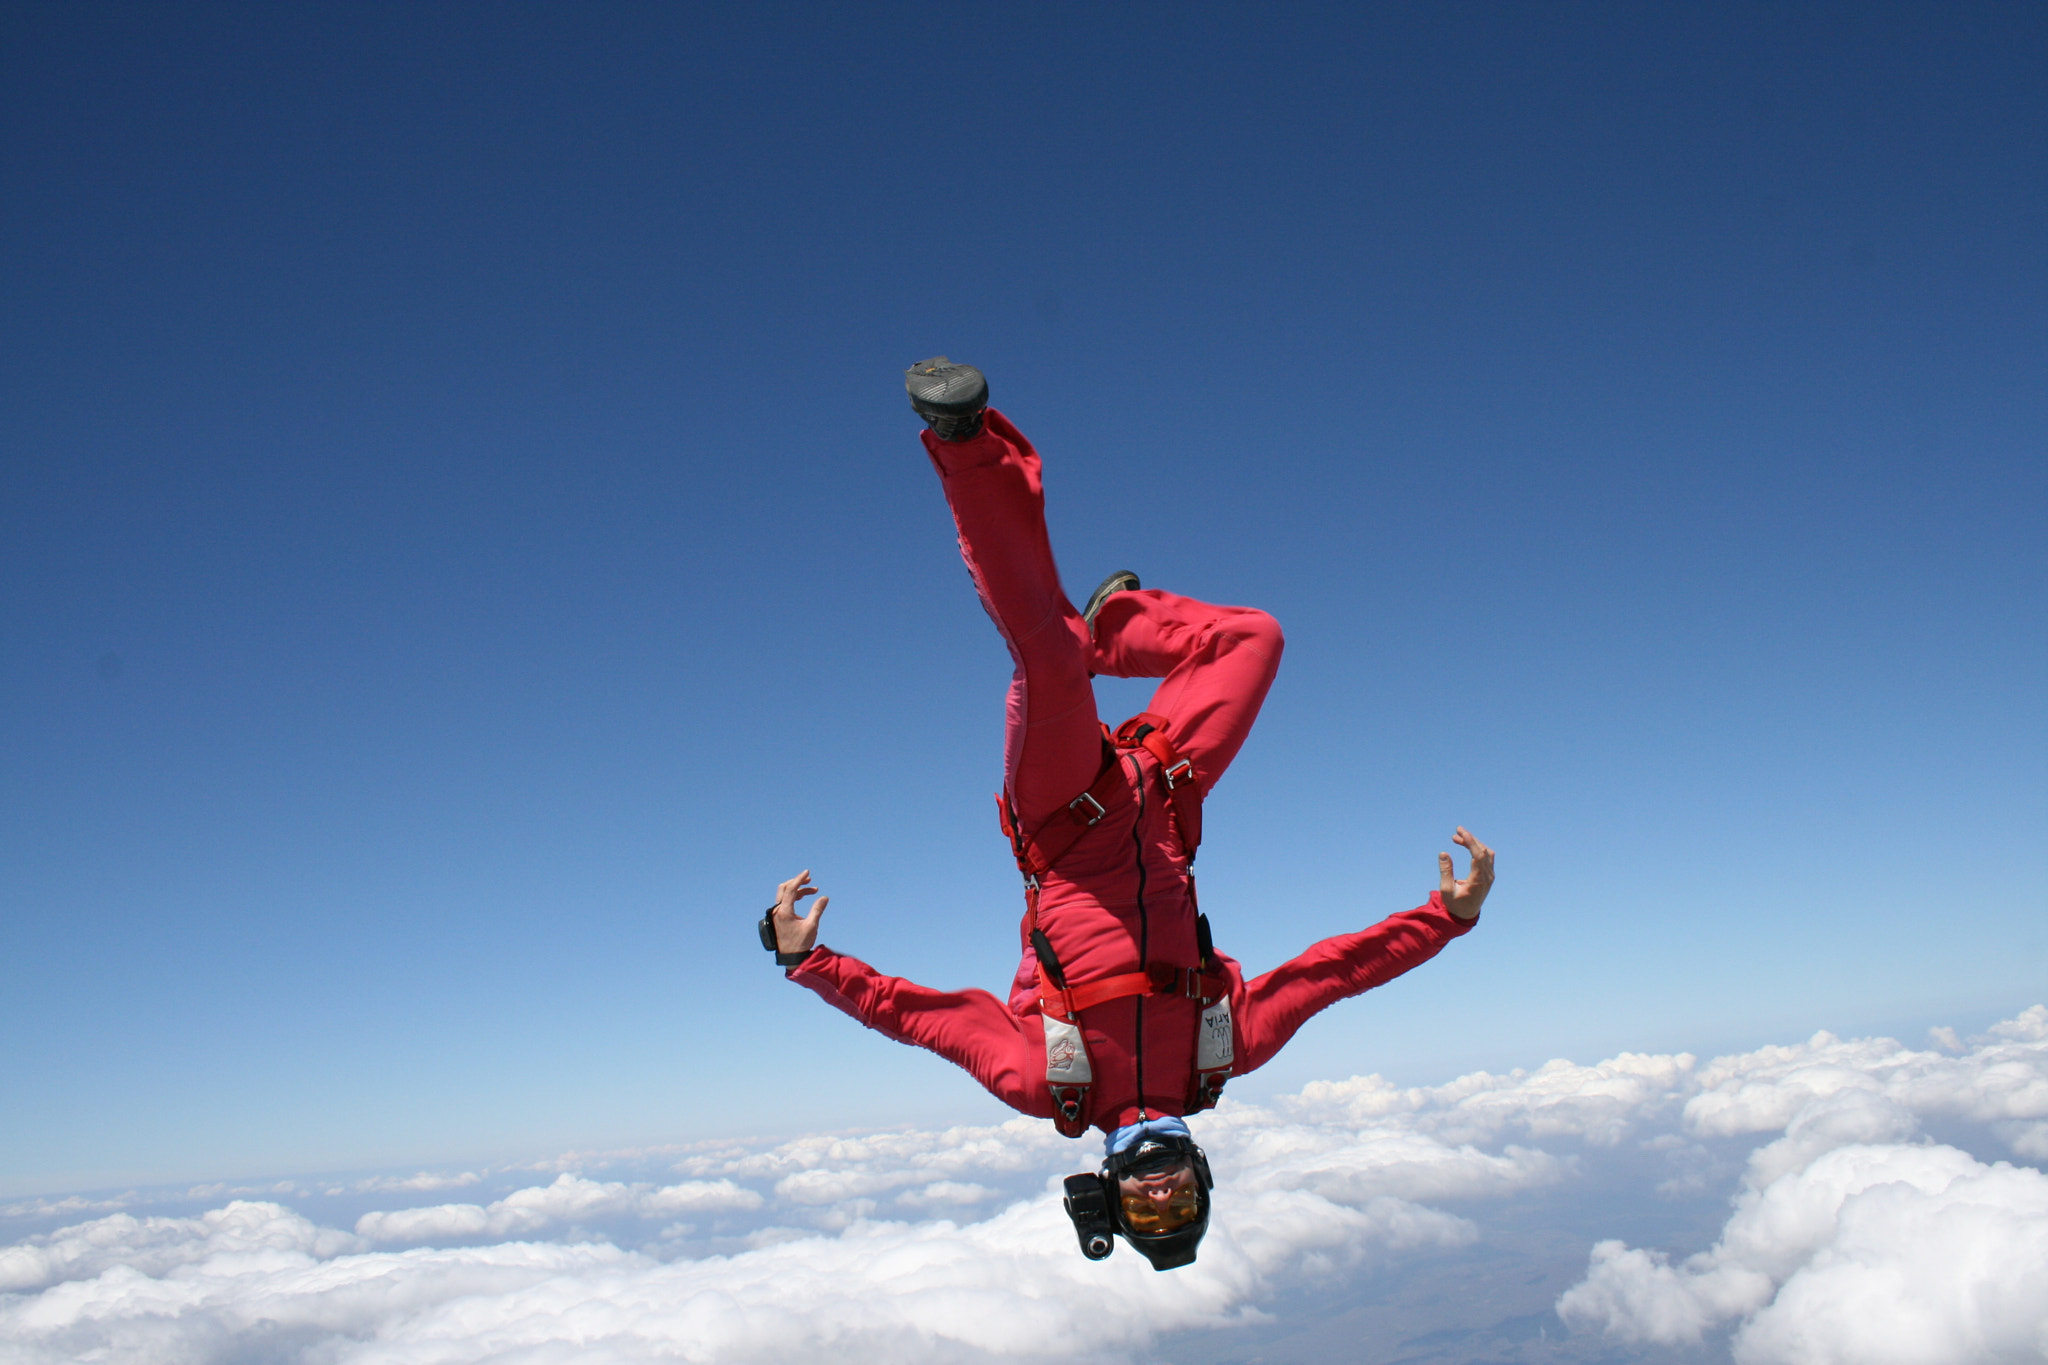 Photograph Skydive by Andrea Maidecchi on 500px